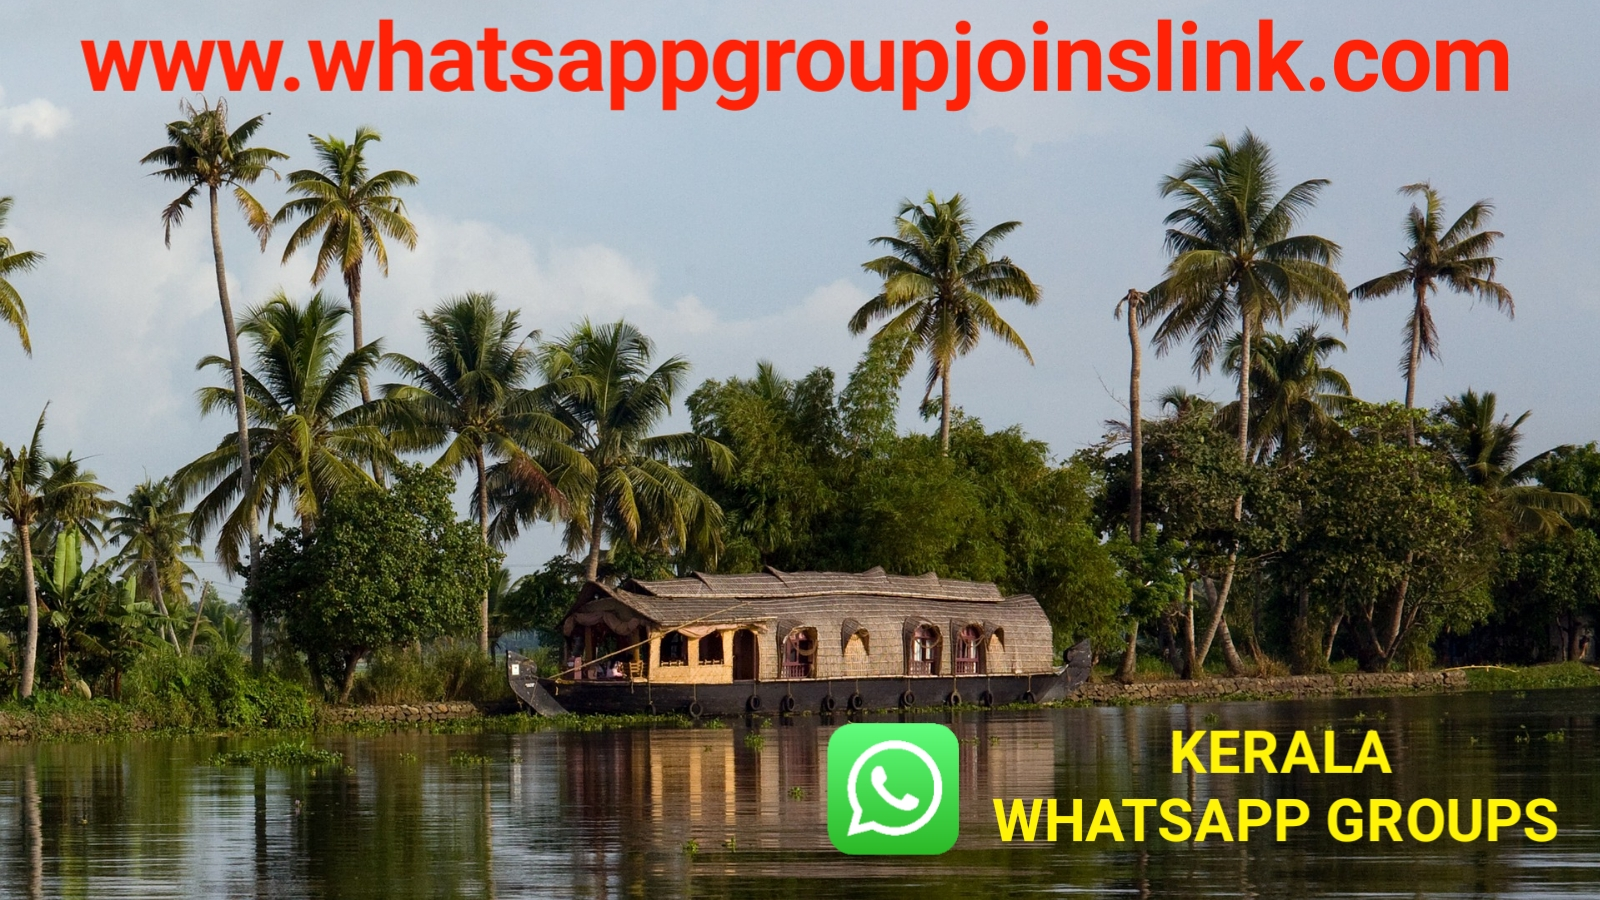 Kerala 2019 WhatsApp Group Joins Link